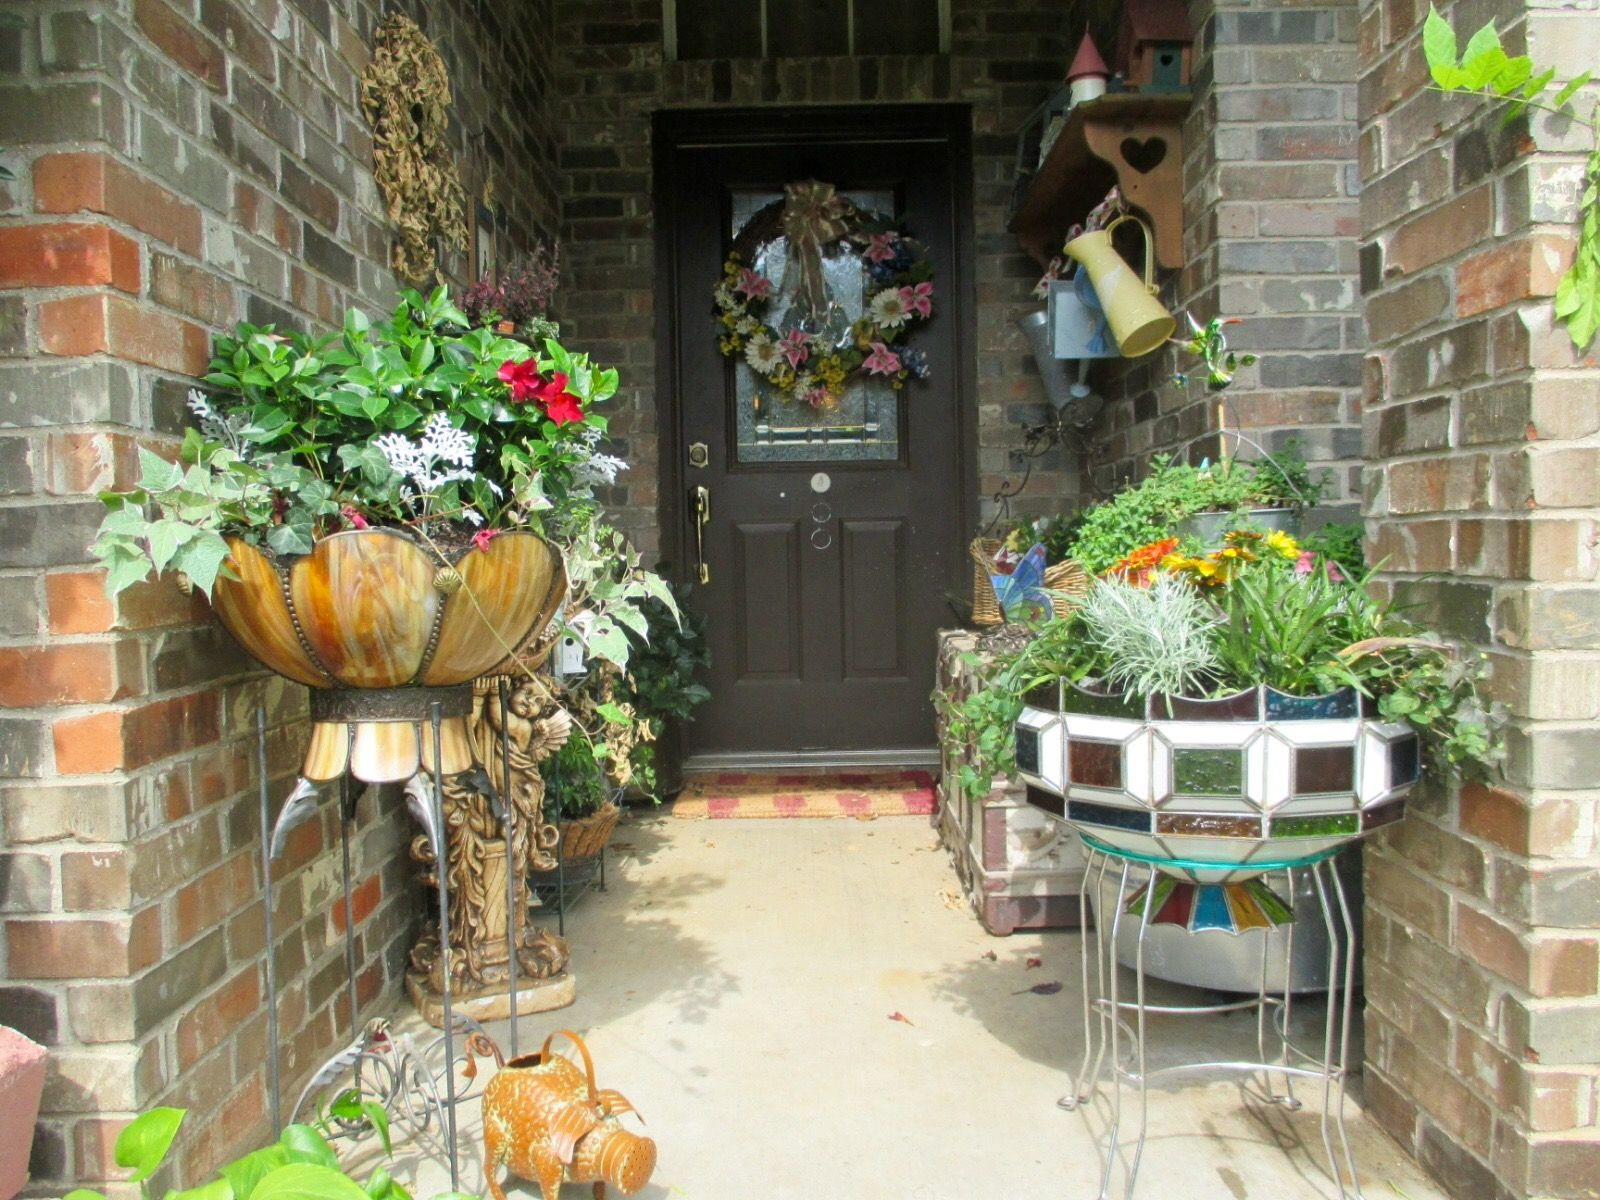 Create a decorative planter from outdated light fixtures